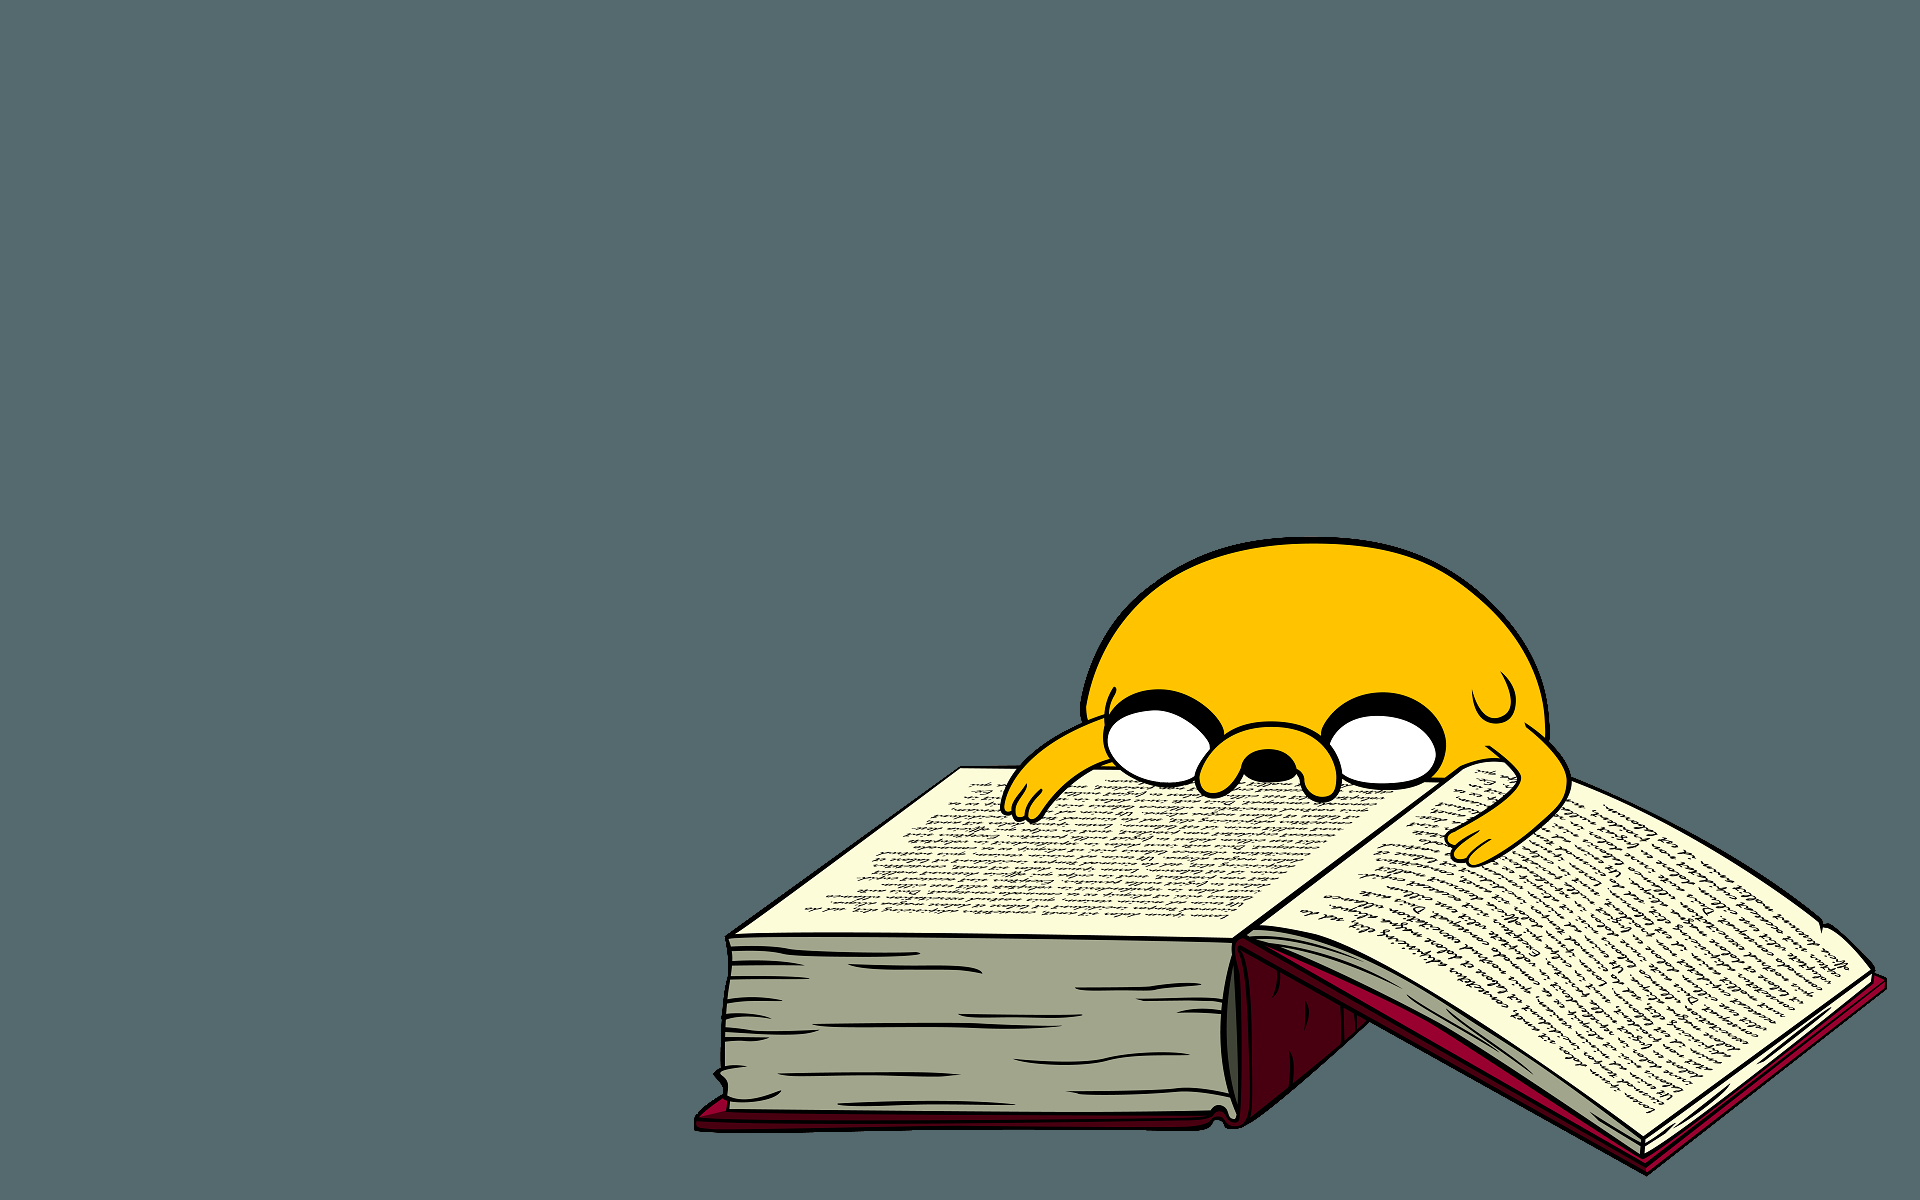 Adventure time full hd wallpaper and background image 1920x1200 tv show adventure time book cartoon humor funny cute jake the dog wallpaper voltagebd Image collections